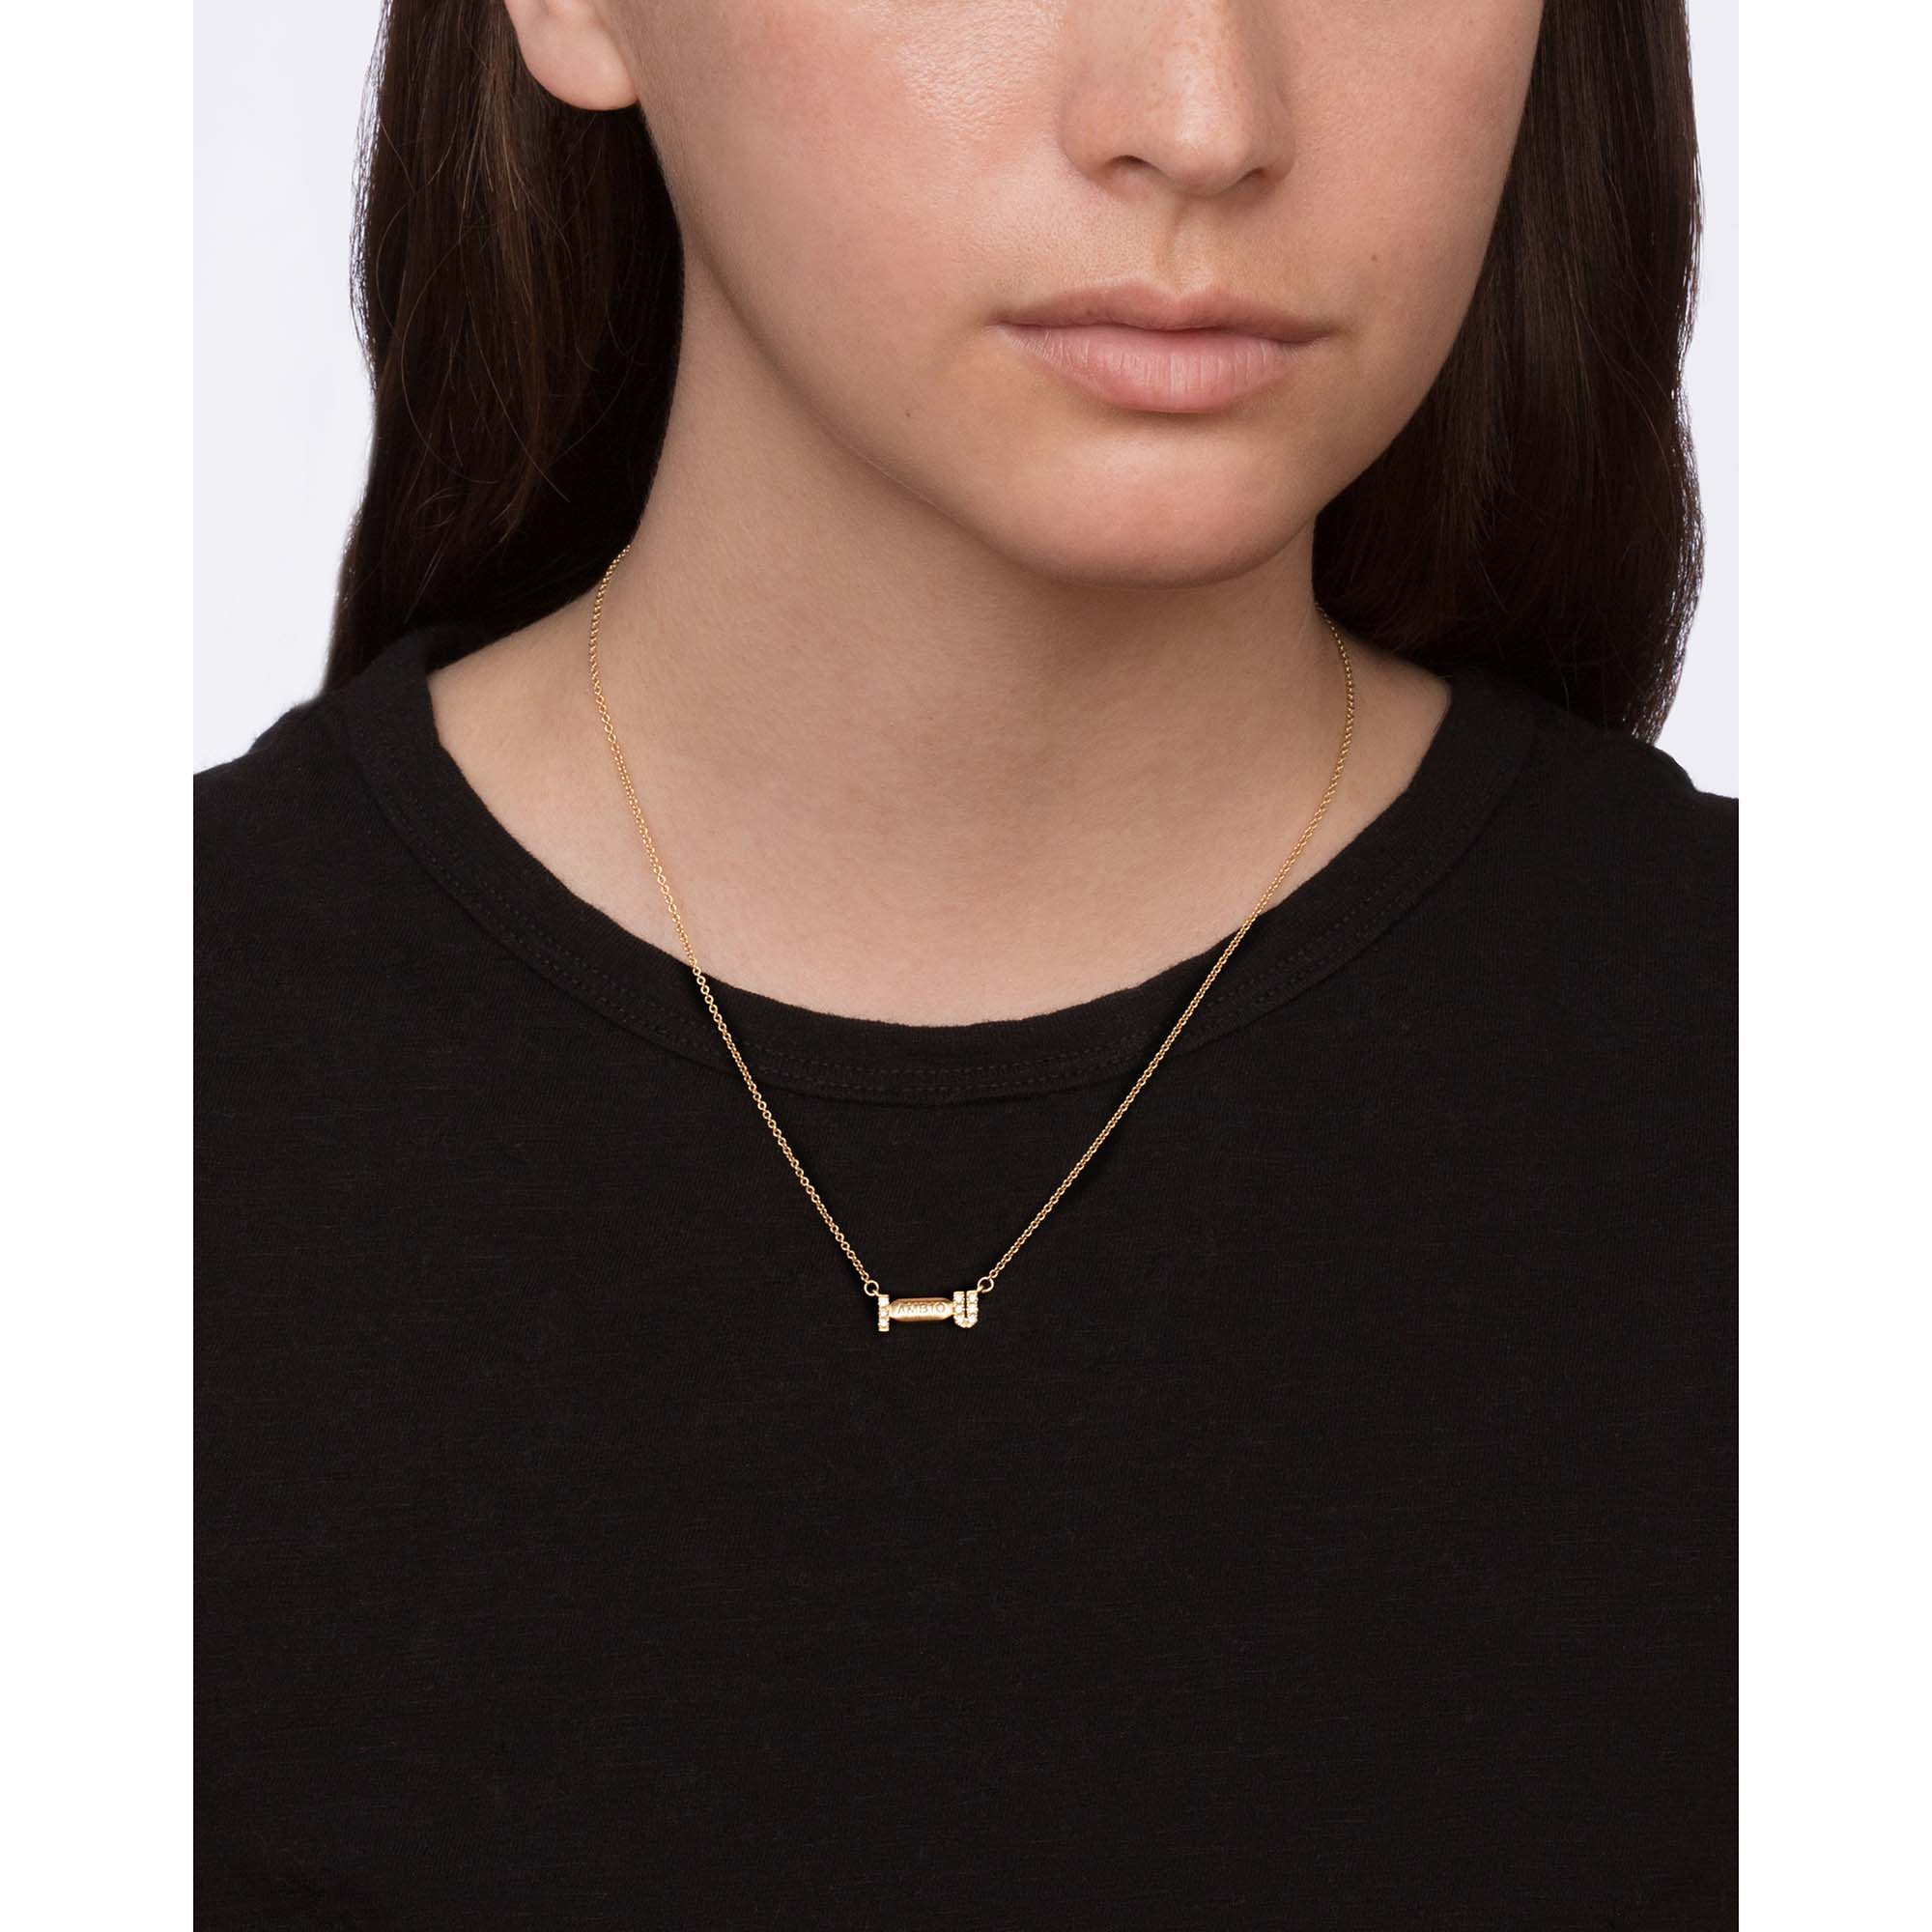 Gold & White Diamond I Ambien You Necklace by Established for Broken English Jewelry